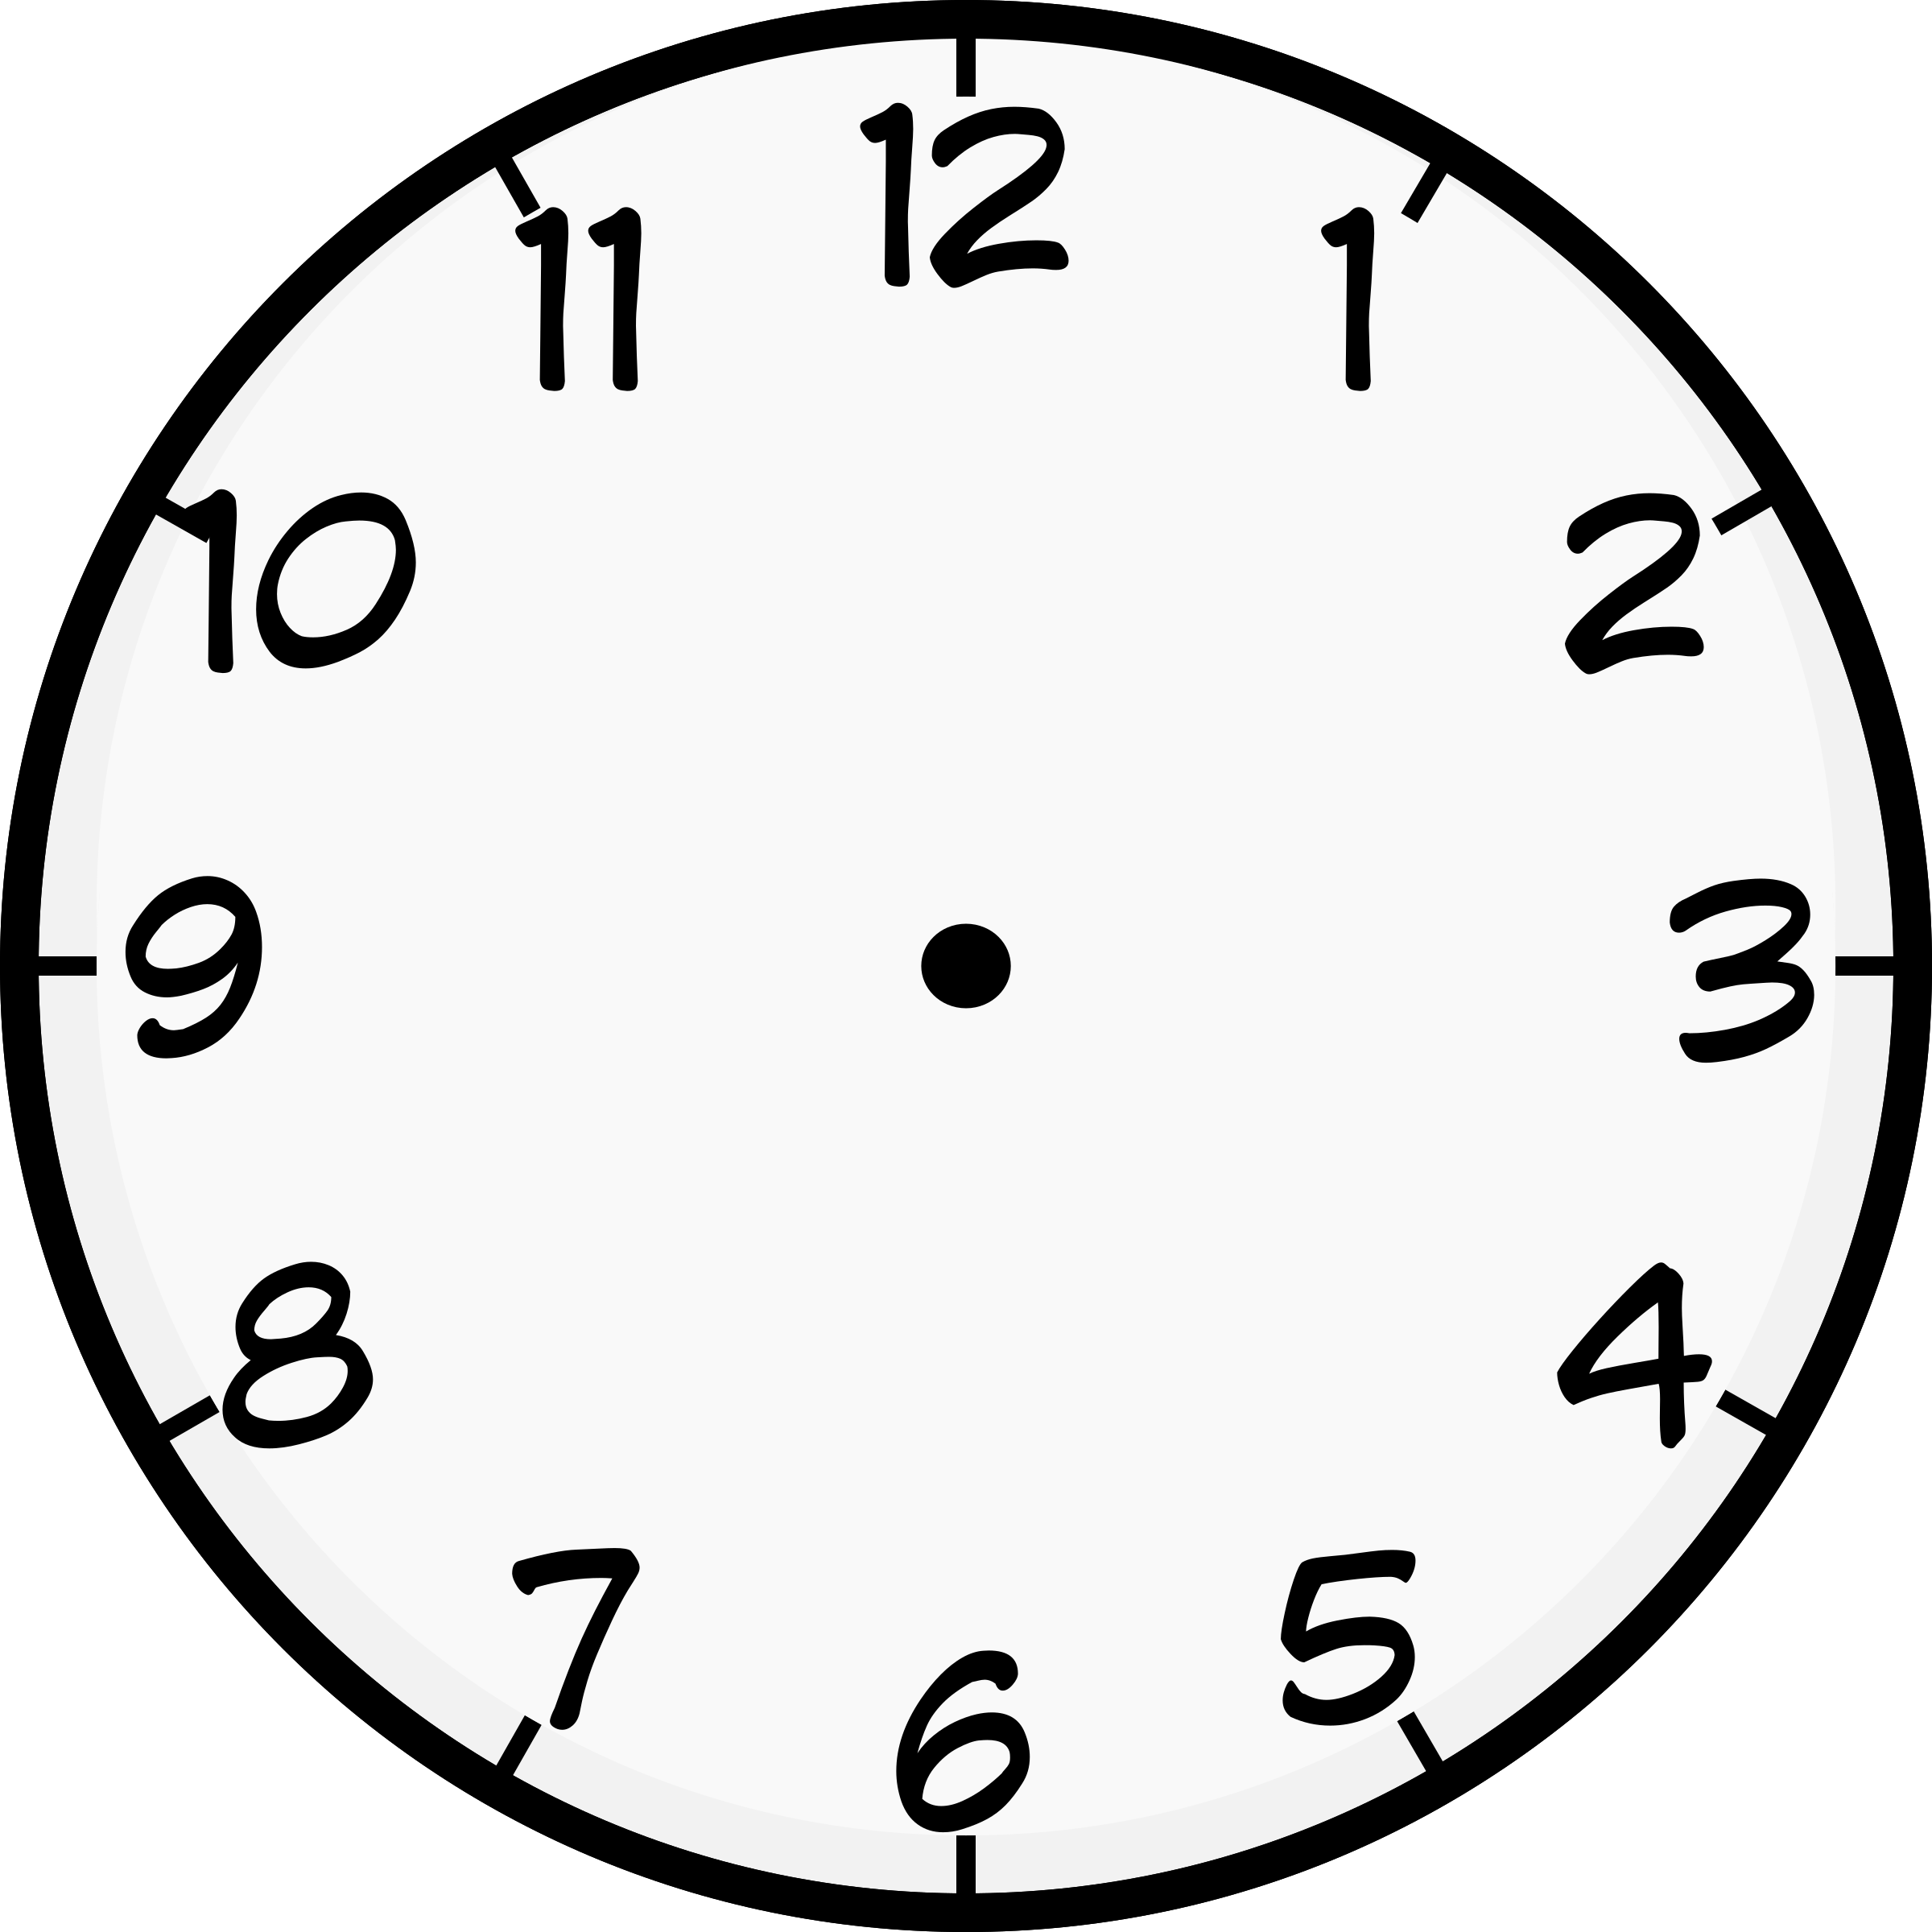 worksheet Clock Face showing post cartoon png 2400x2400 clock face